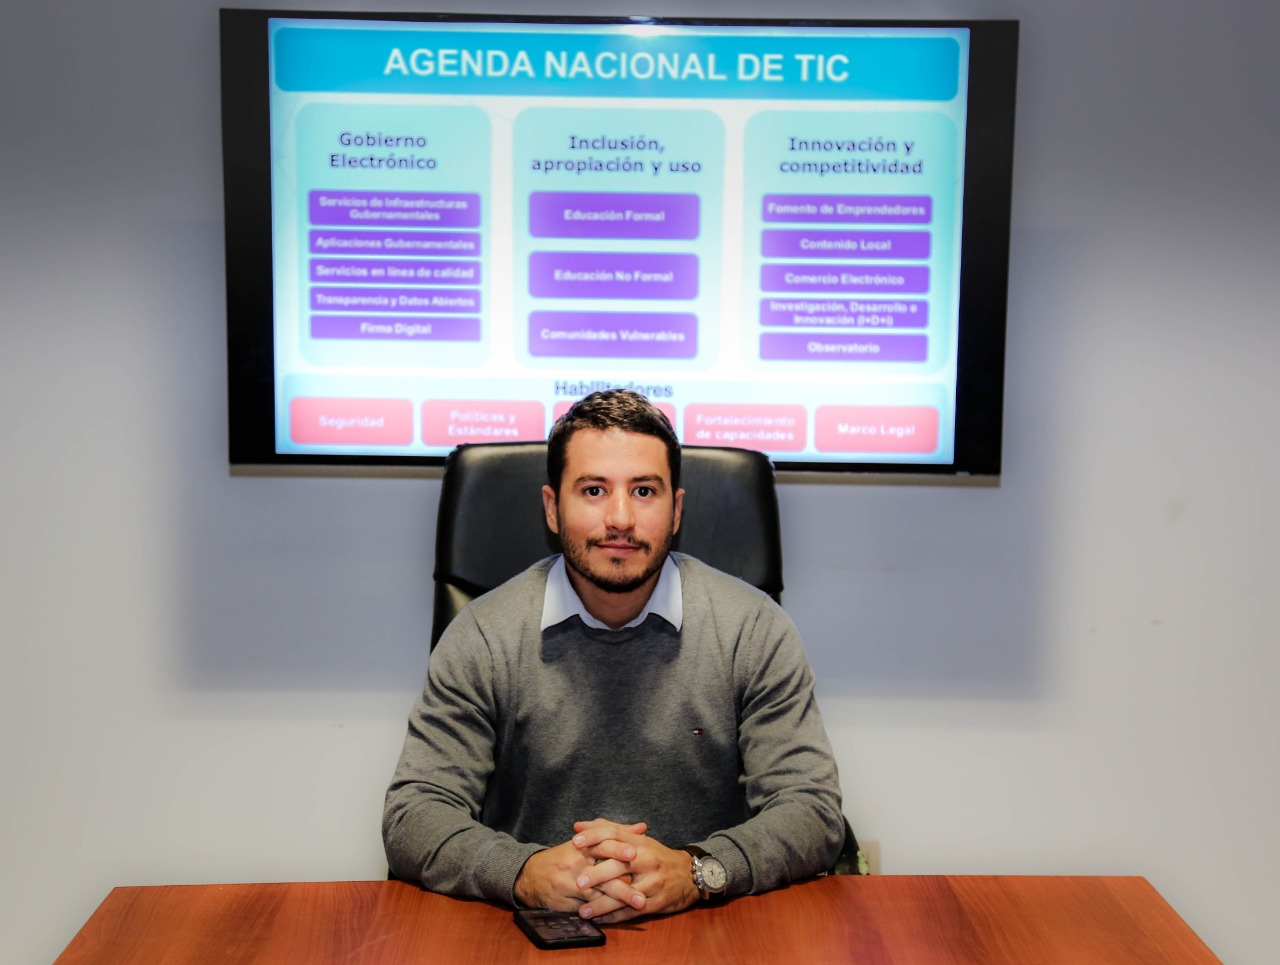 WhatsApp_Image_2018-08-16_at_15.50.08.jpeg